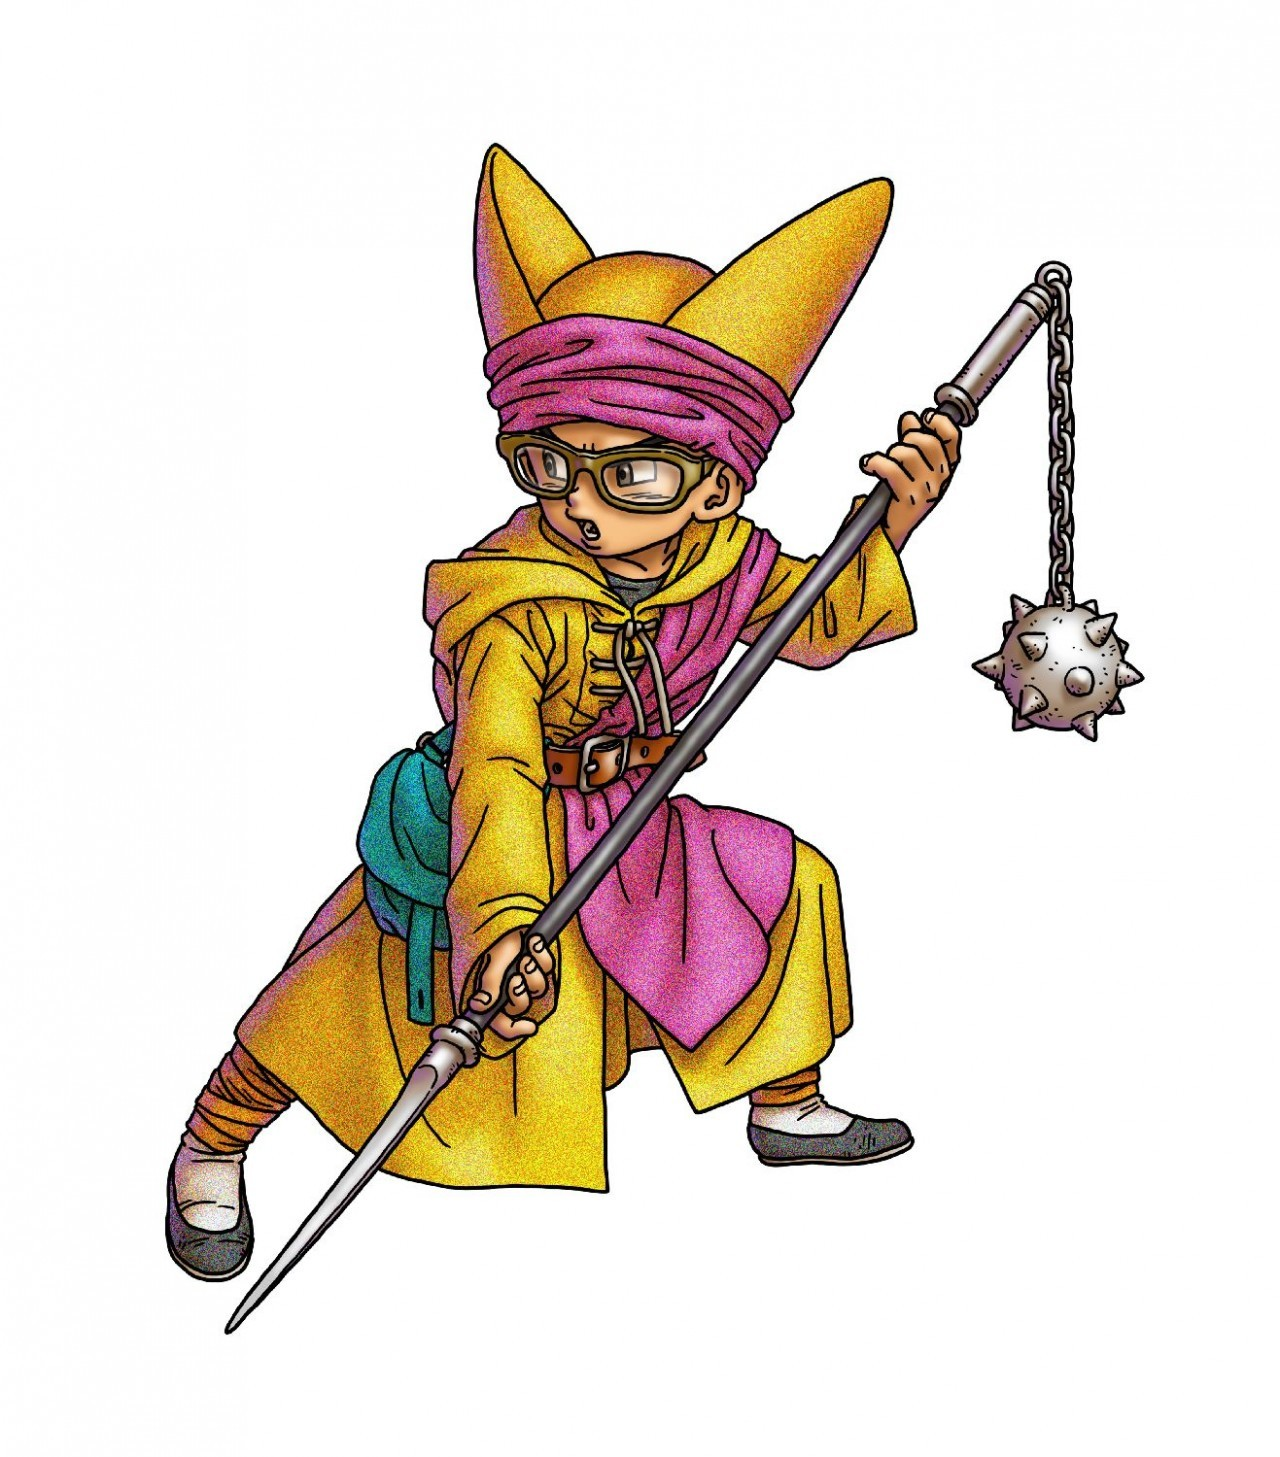 Dragon Quest Vi Fliegender Teppich Artworks Dragon Quest Vi Le Royaume Des Songes